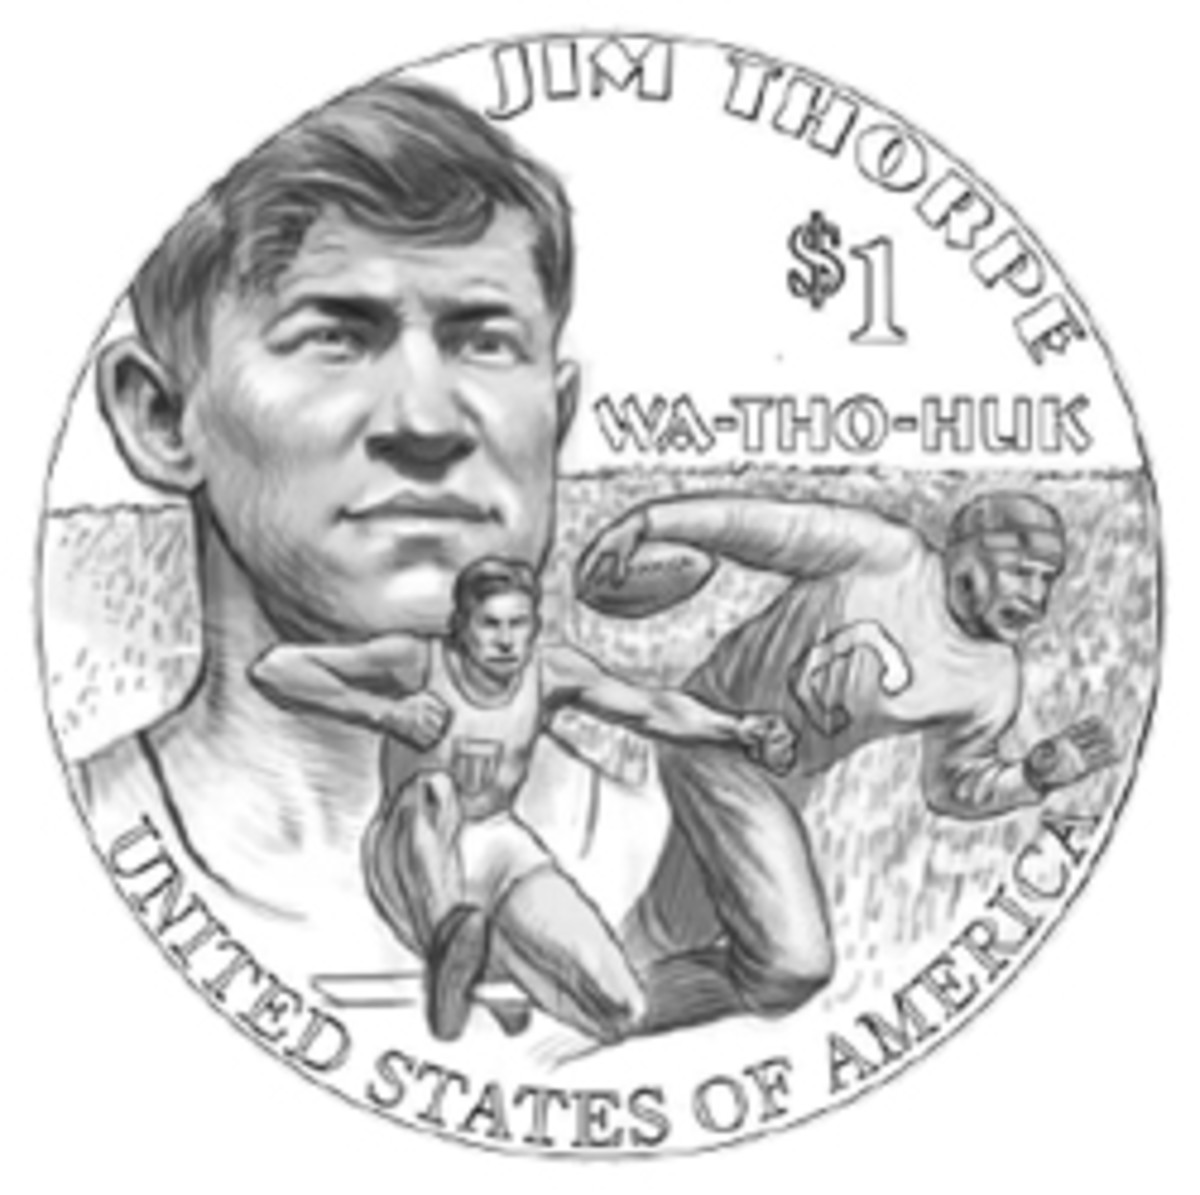 Jim Thorpe is set to appear on the reverse of the 2018 Native American dollar coin.